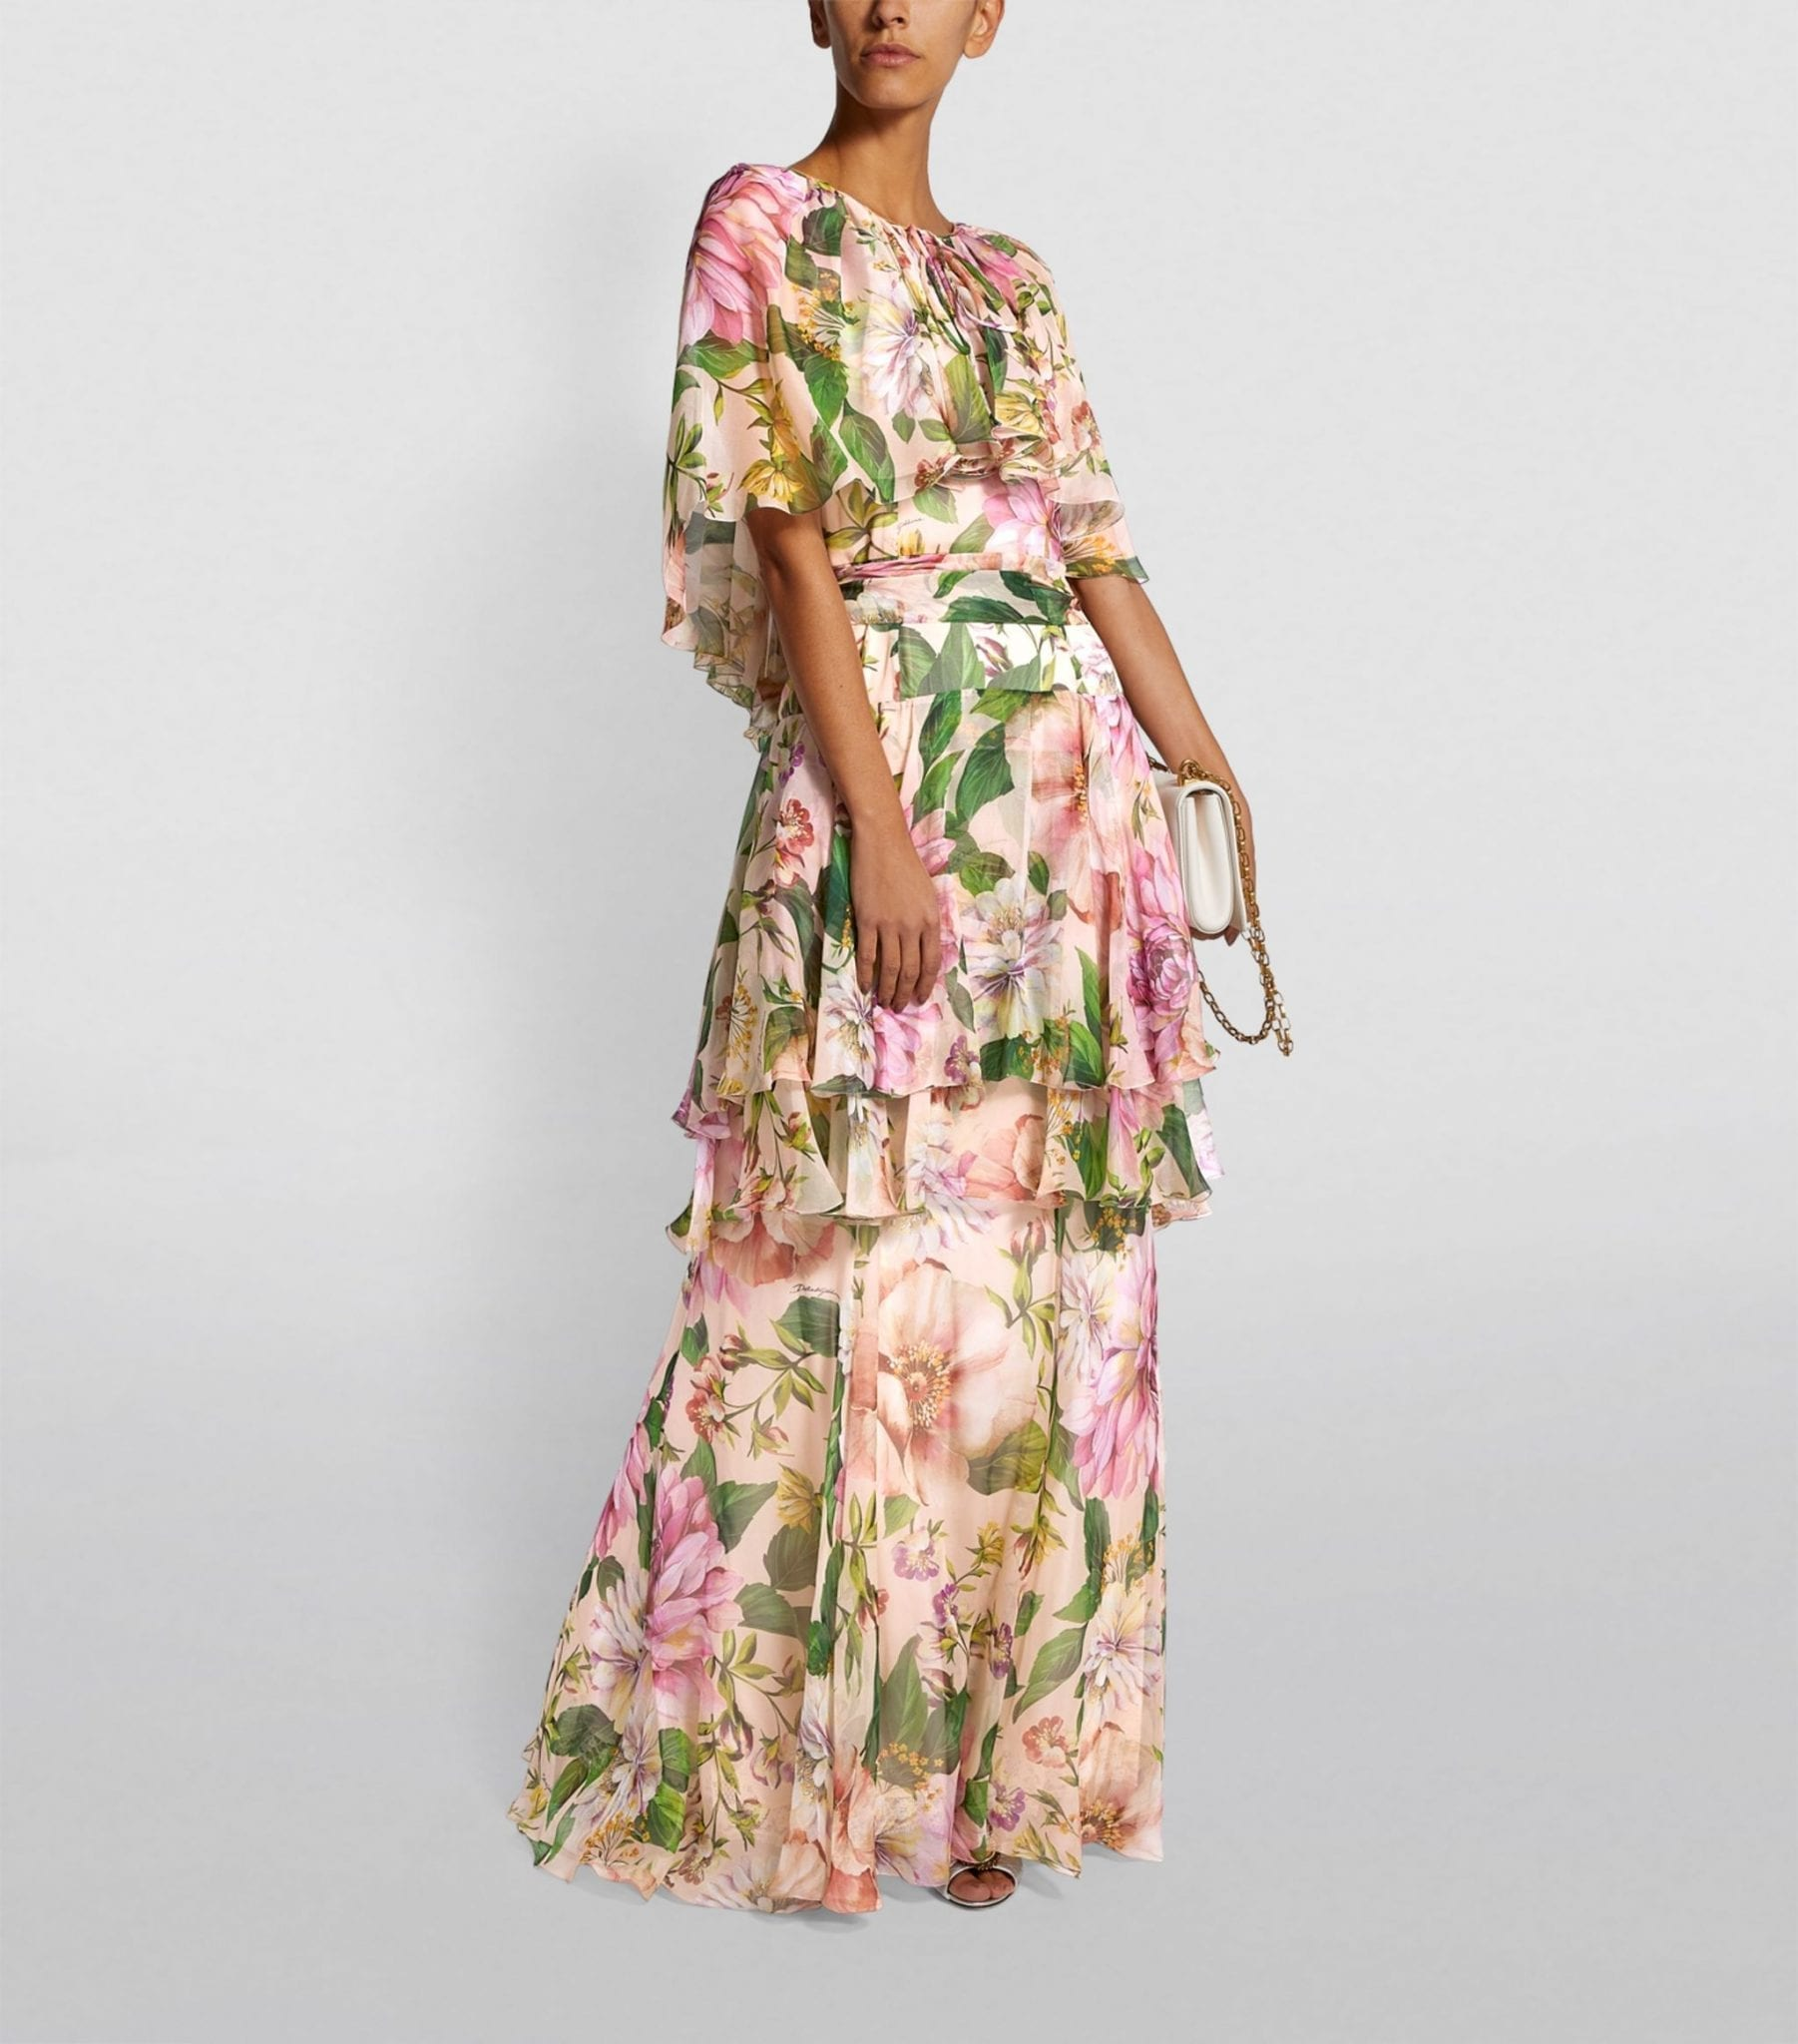 DOLCE & GABBANA Silk Floral Print Layered Maxi Dress